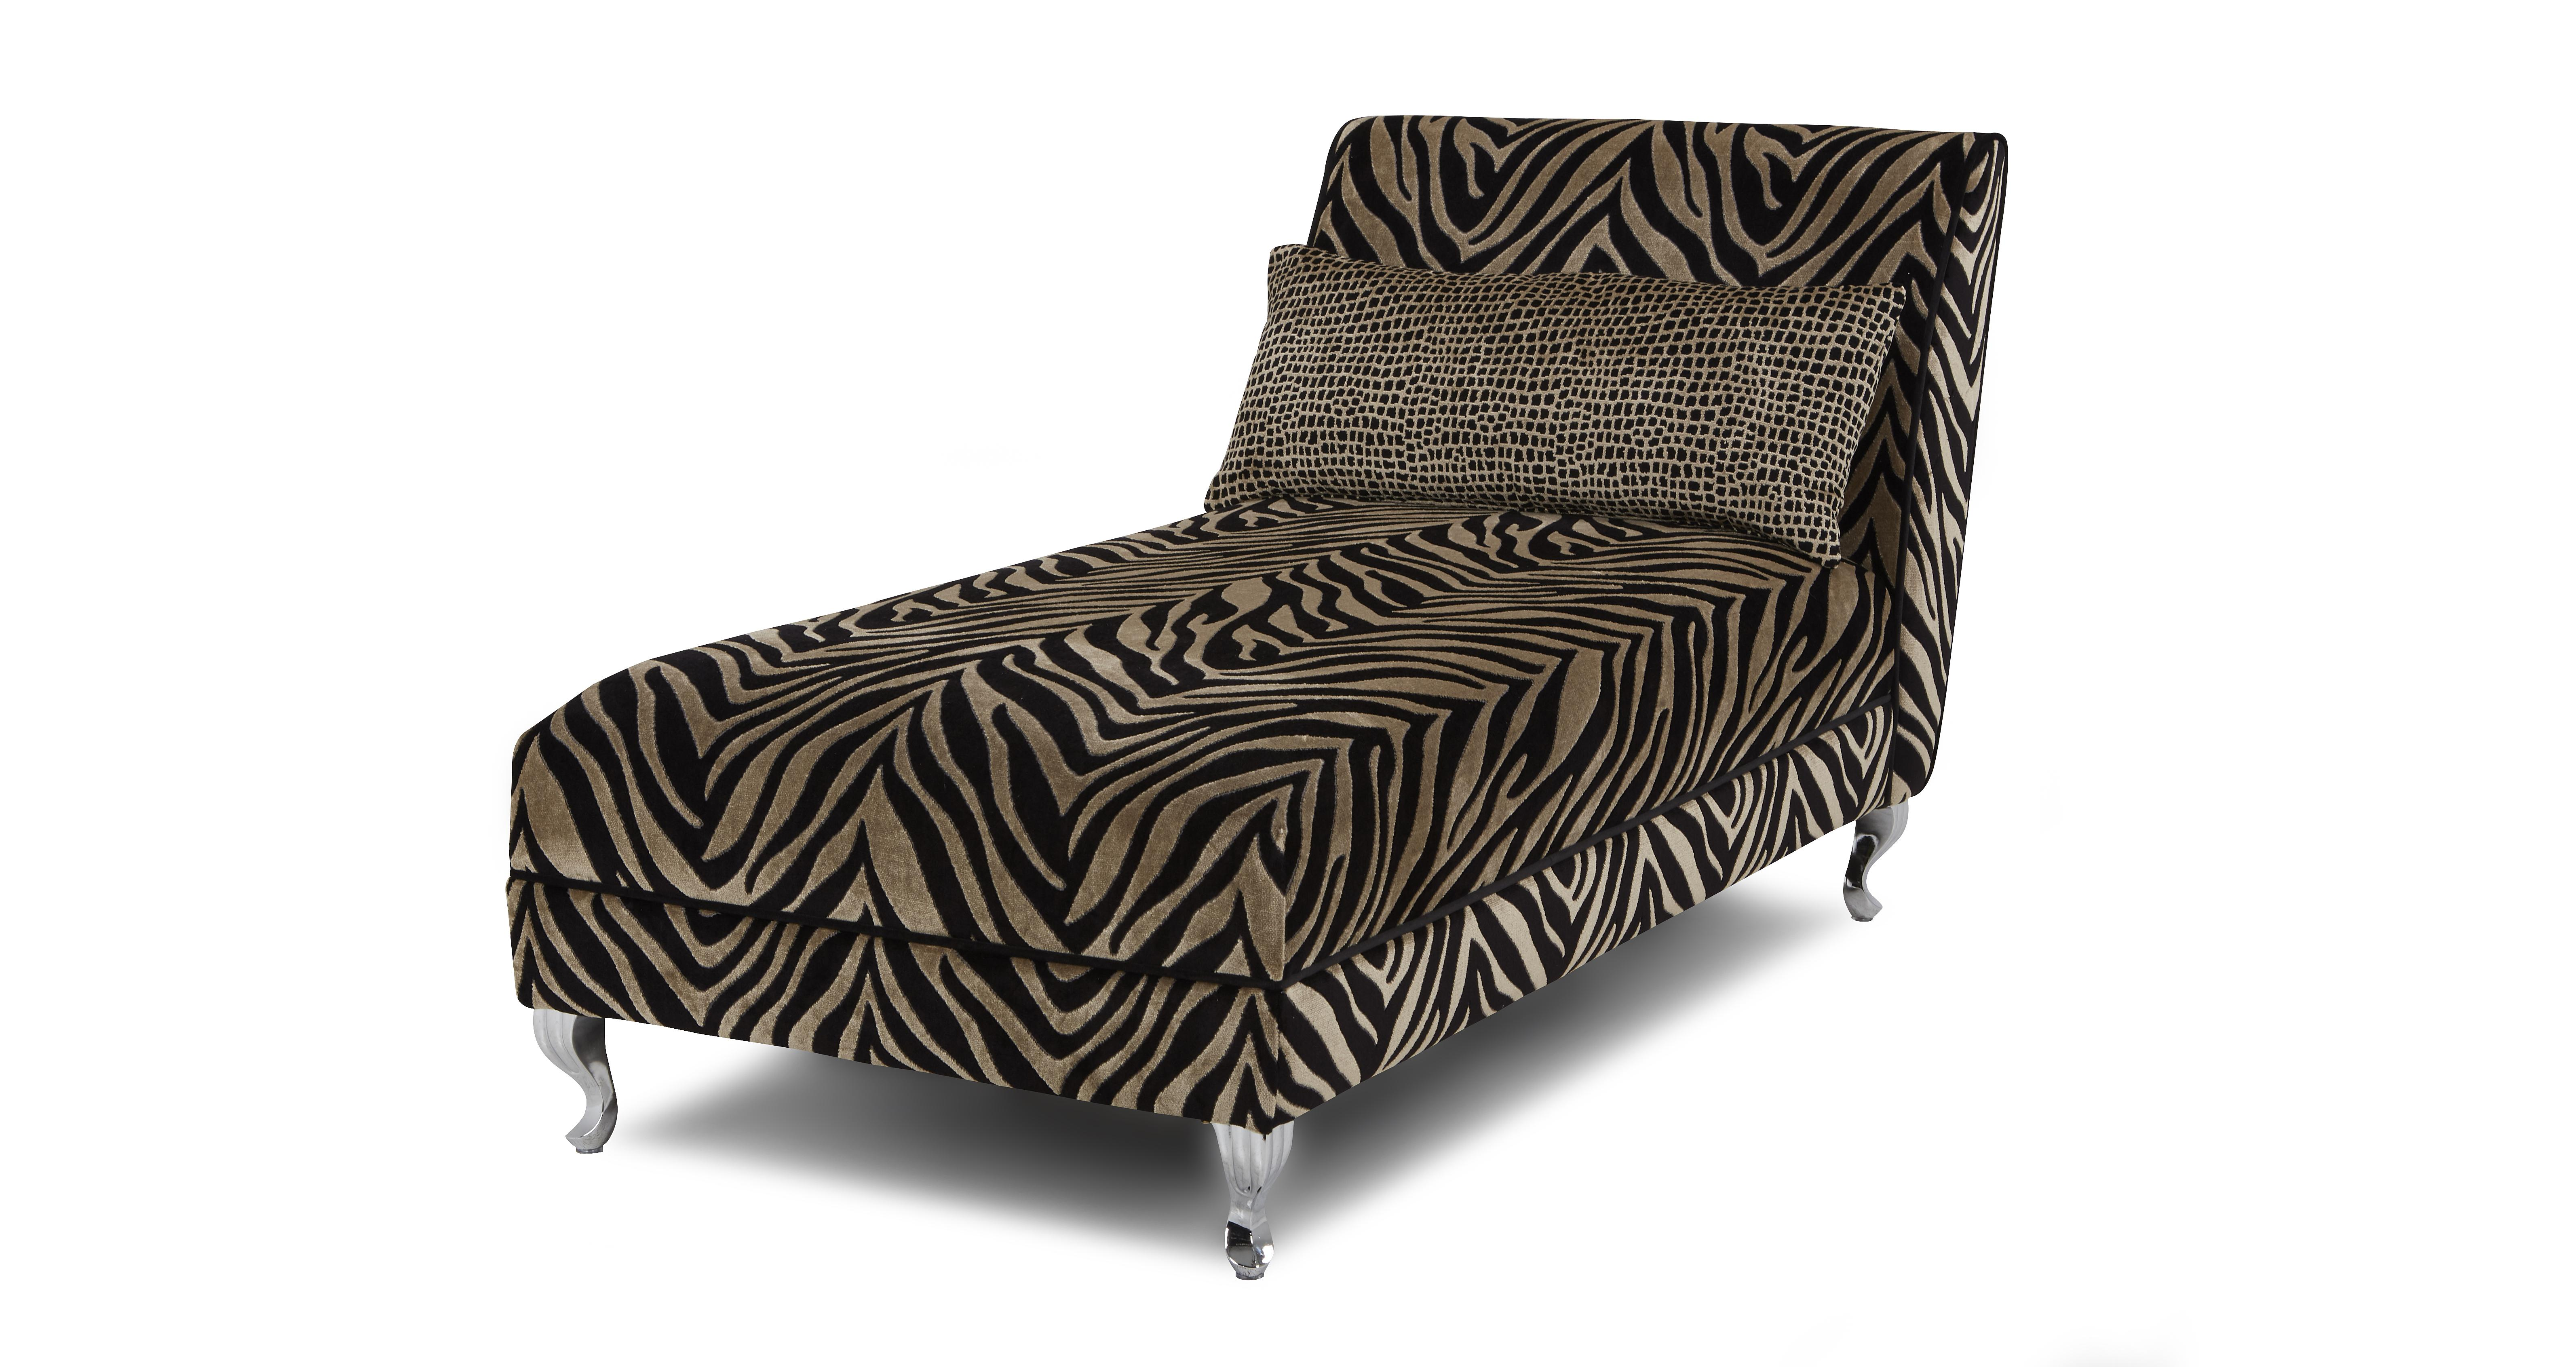 Tremendous Madagascar Tiger Pattern Chaise Longue Andrewgaddart Wooden Chair Designs For Living Room Andrewgaddartcom